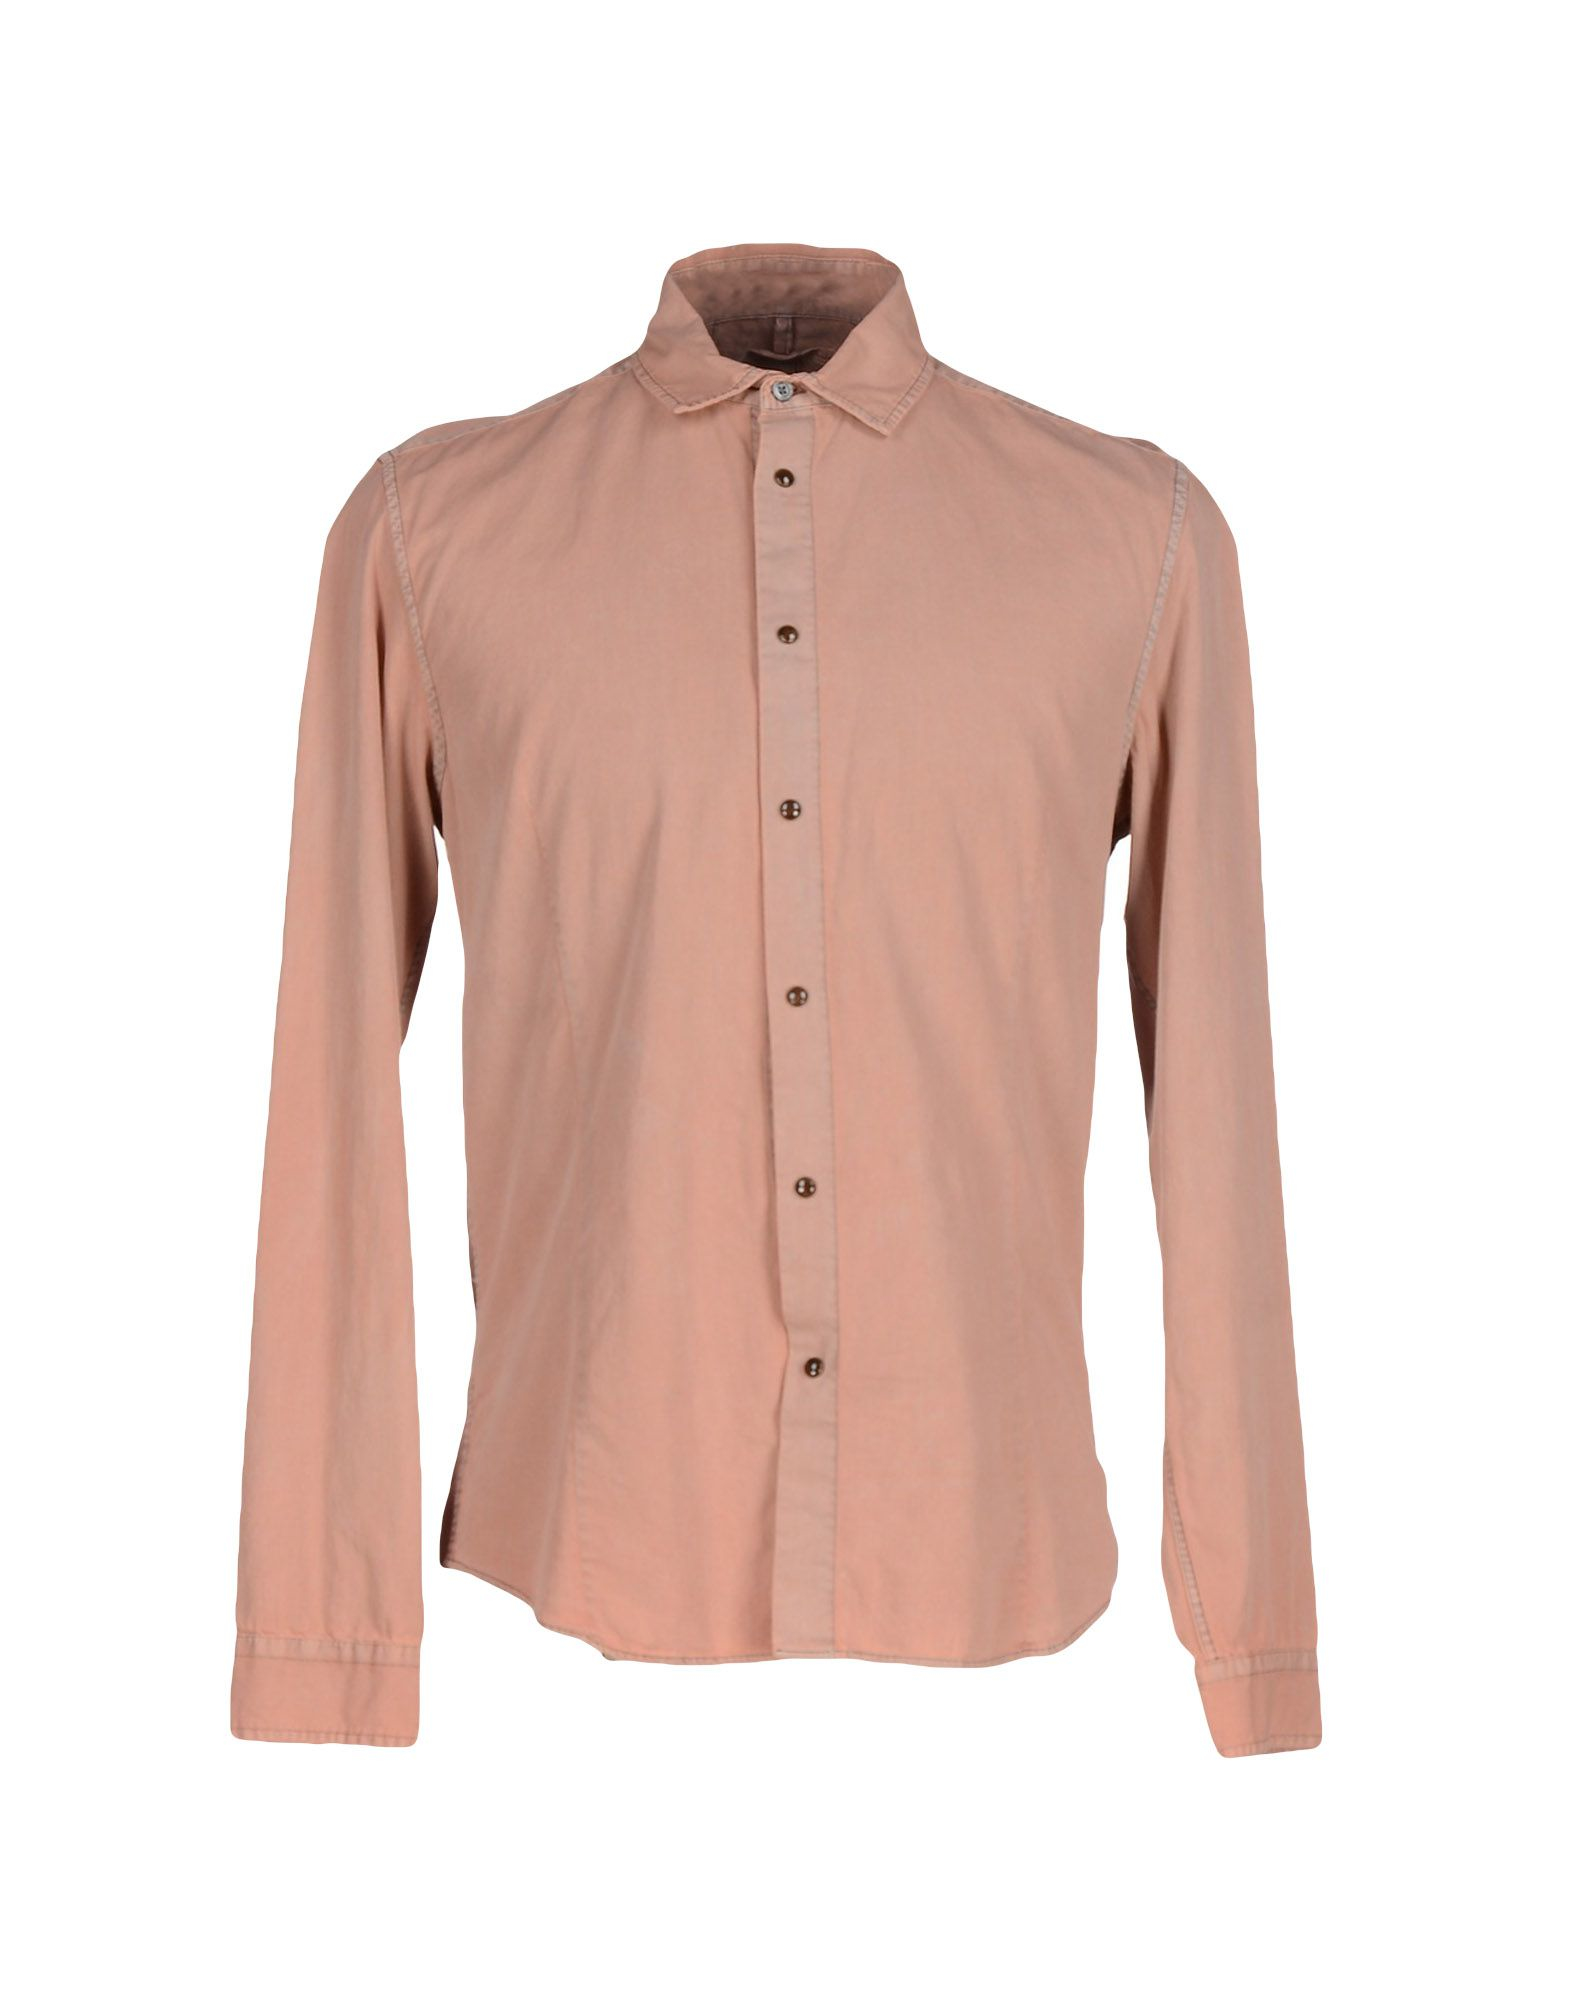 Patrizia Pepe Shirt In Pink For Men Lyst